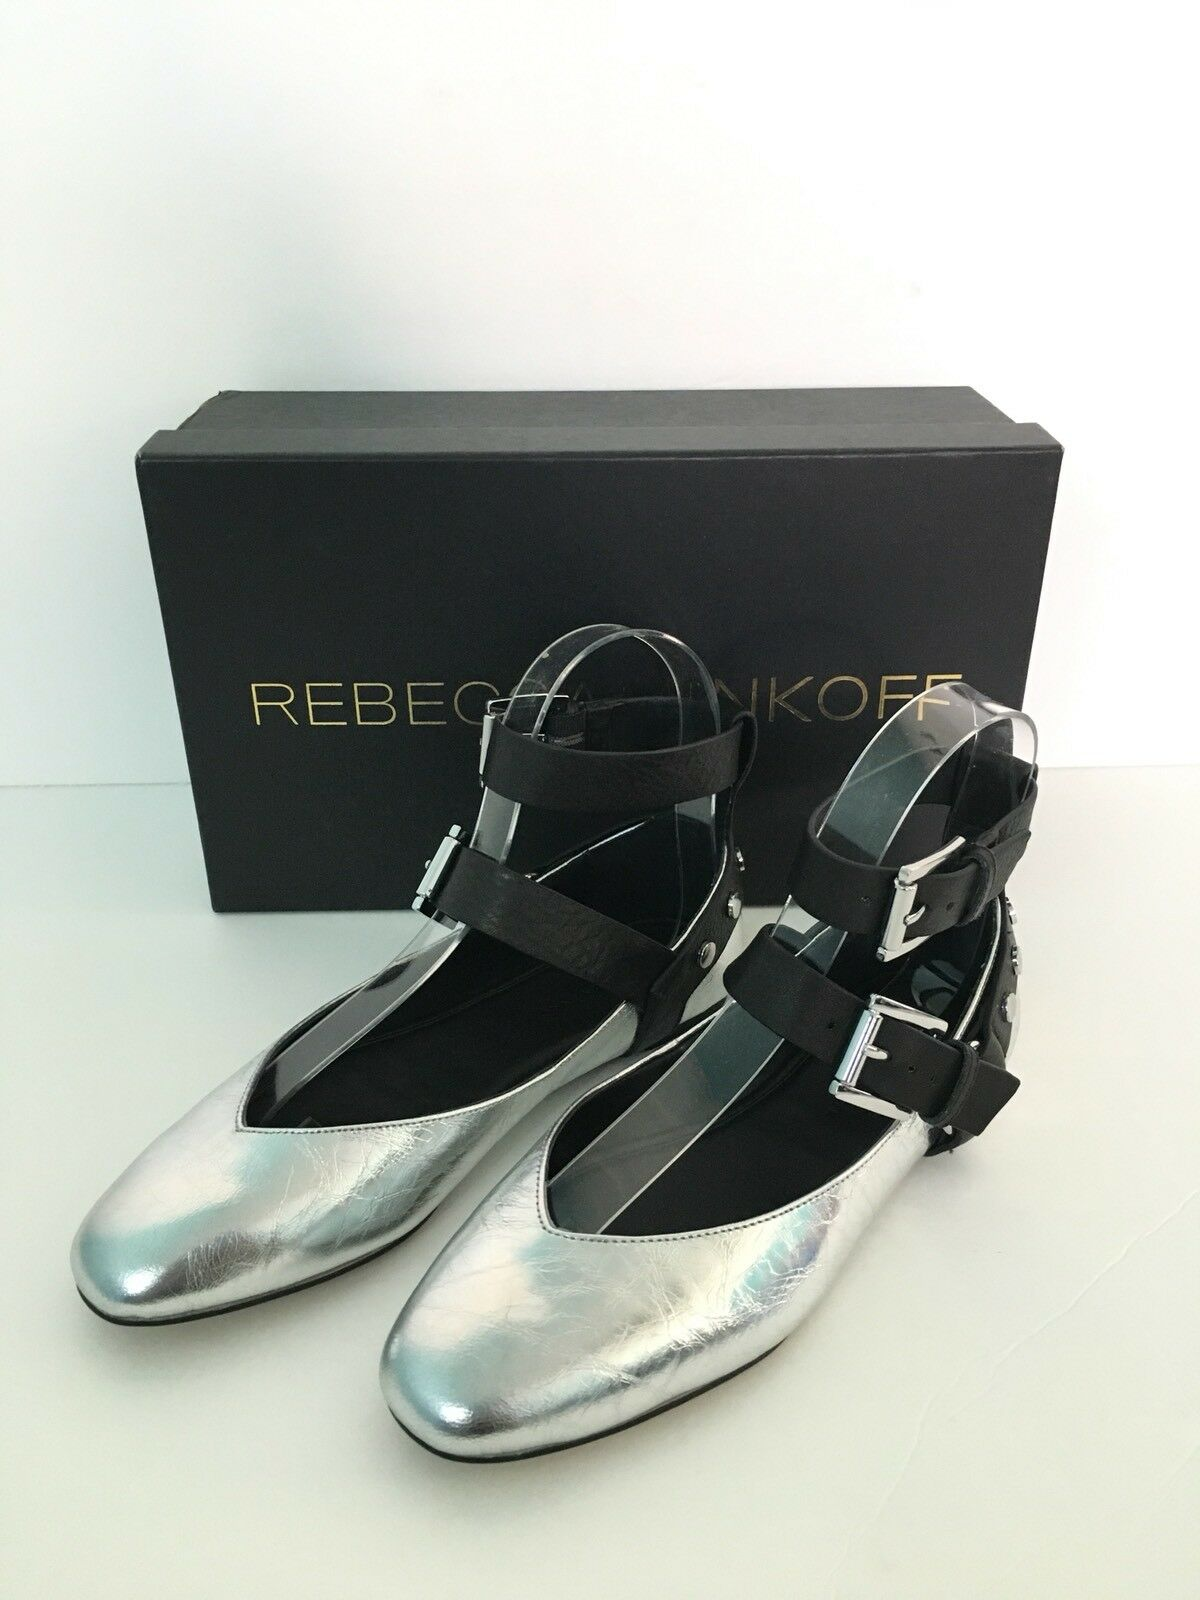 NEW WITH BOX Women's REBECCA MINKOFF Modern Vivica Silver Leather Flat shoes 5.5